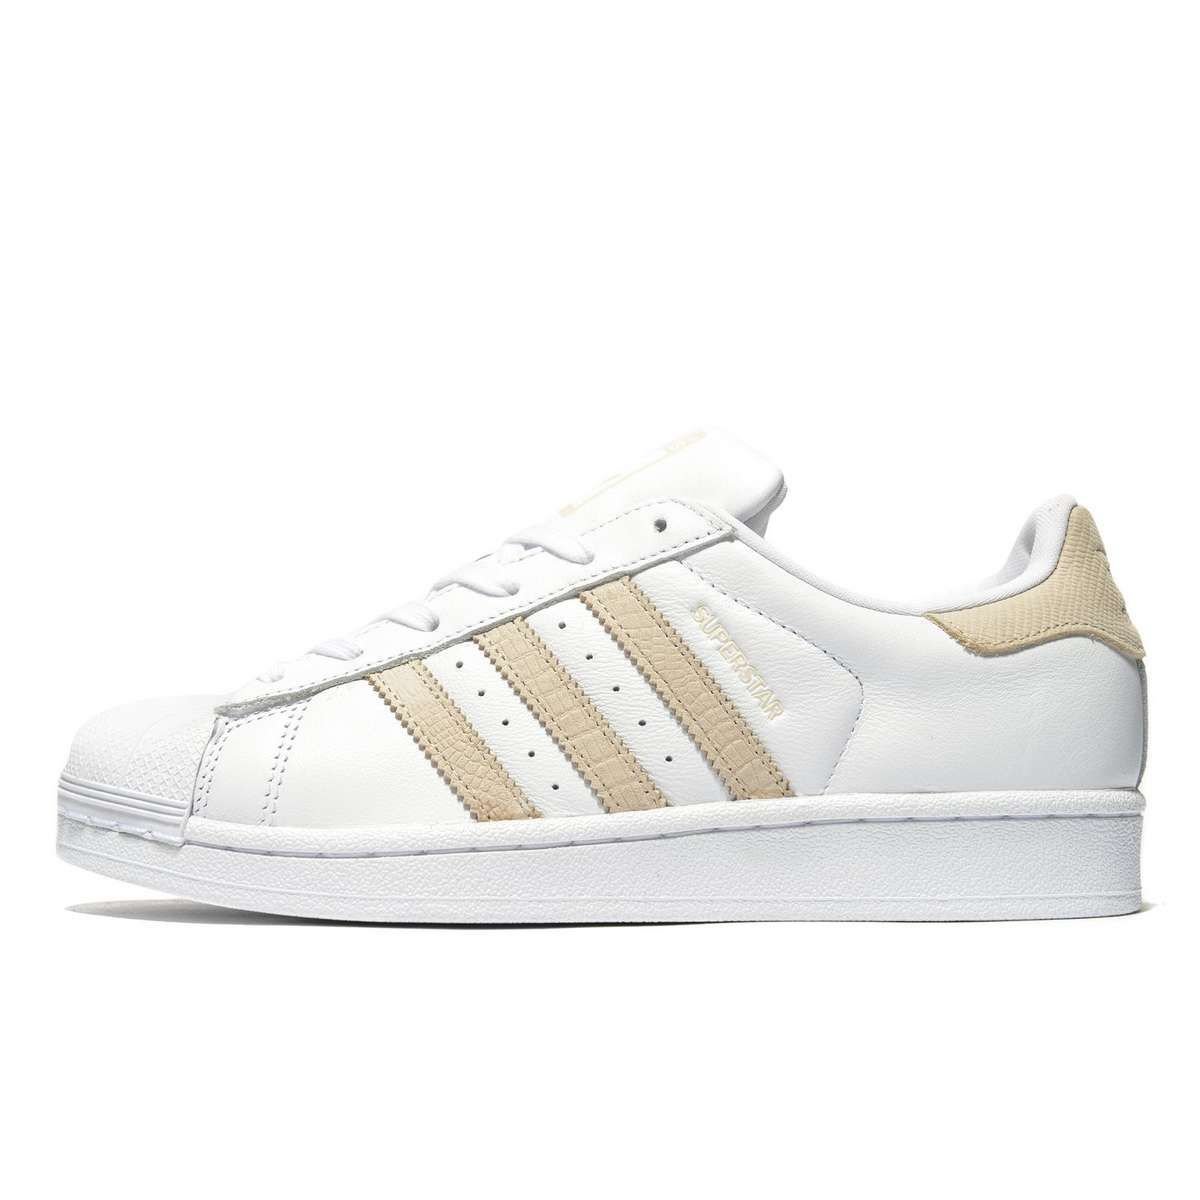 Adidas Originals Superstar Women S Adidas Superstar Zapatillas Adidas Superstar Zapatos